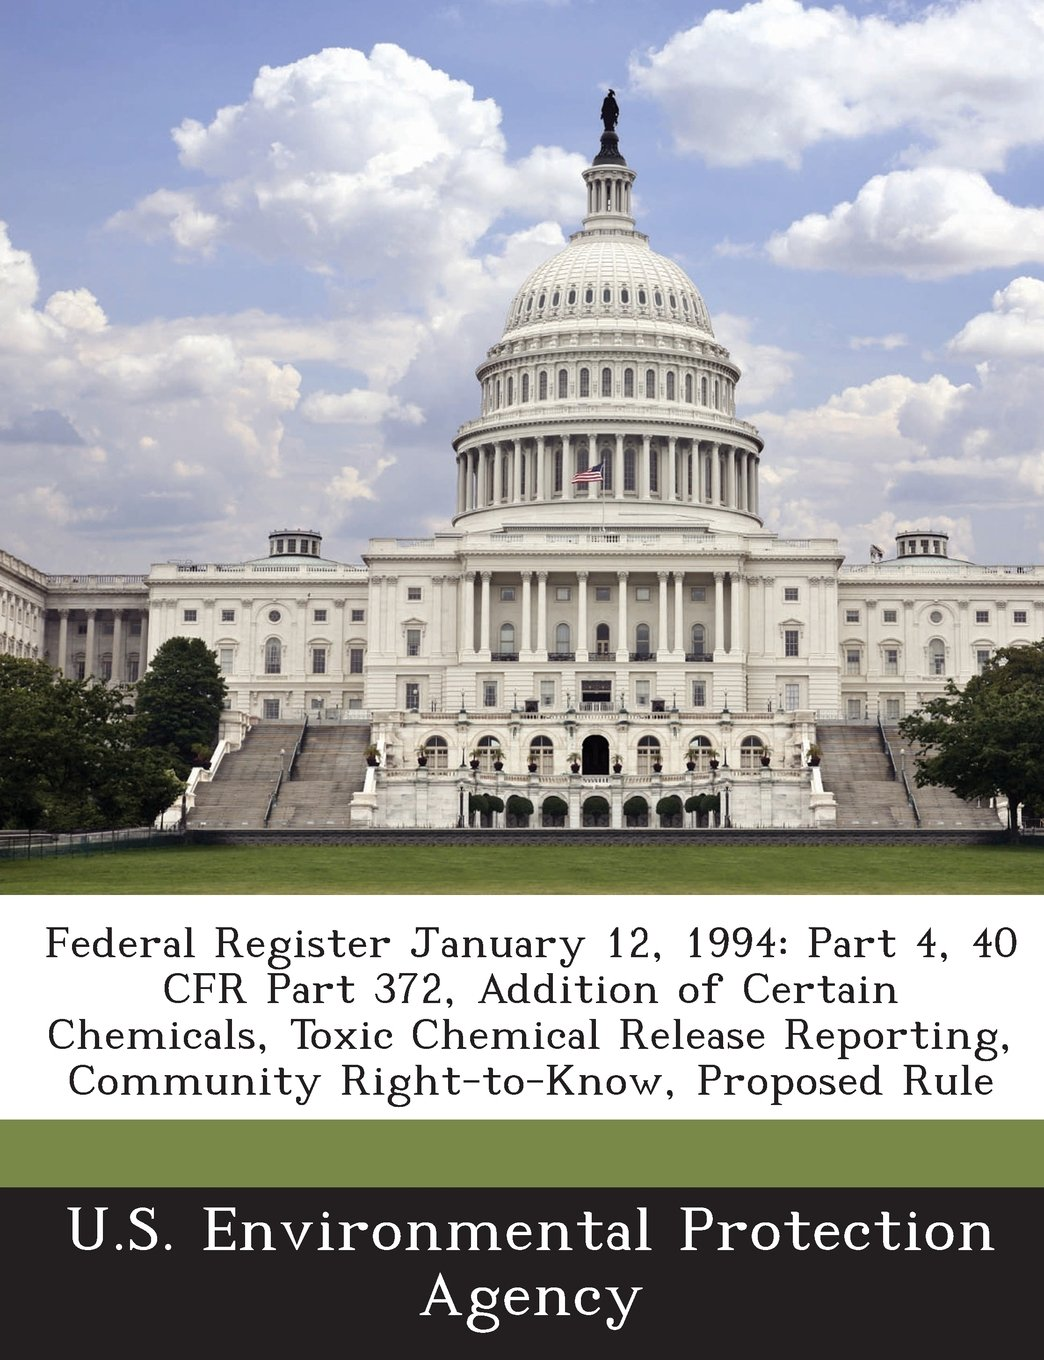 Federal Register January 12, 1994: Part 4, 40 CFR Part 372, Addition of Certain Chemicals, Toxic Chemical Release Reporting, Community Right-to-Know, Proposed Rule PDF